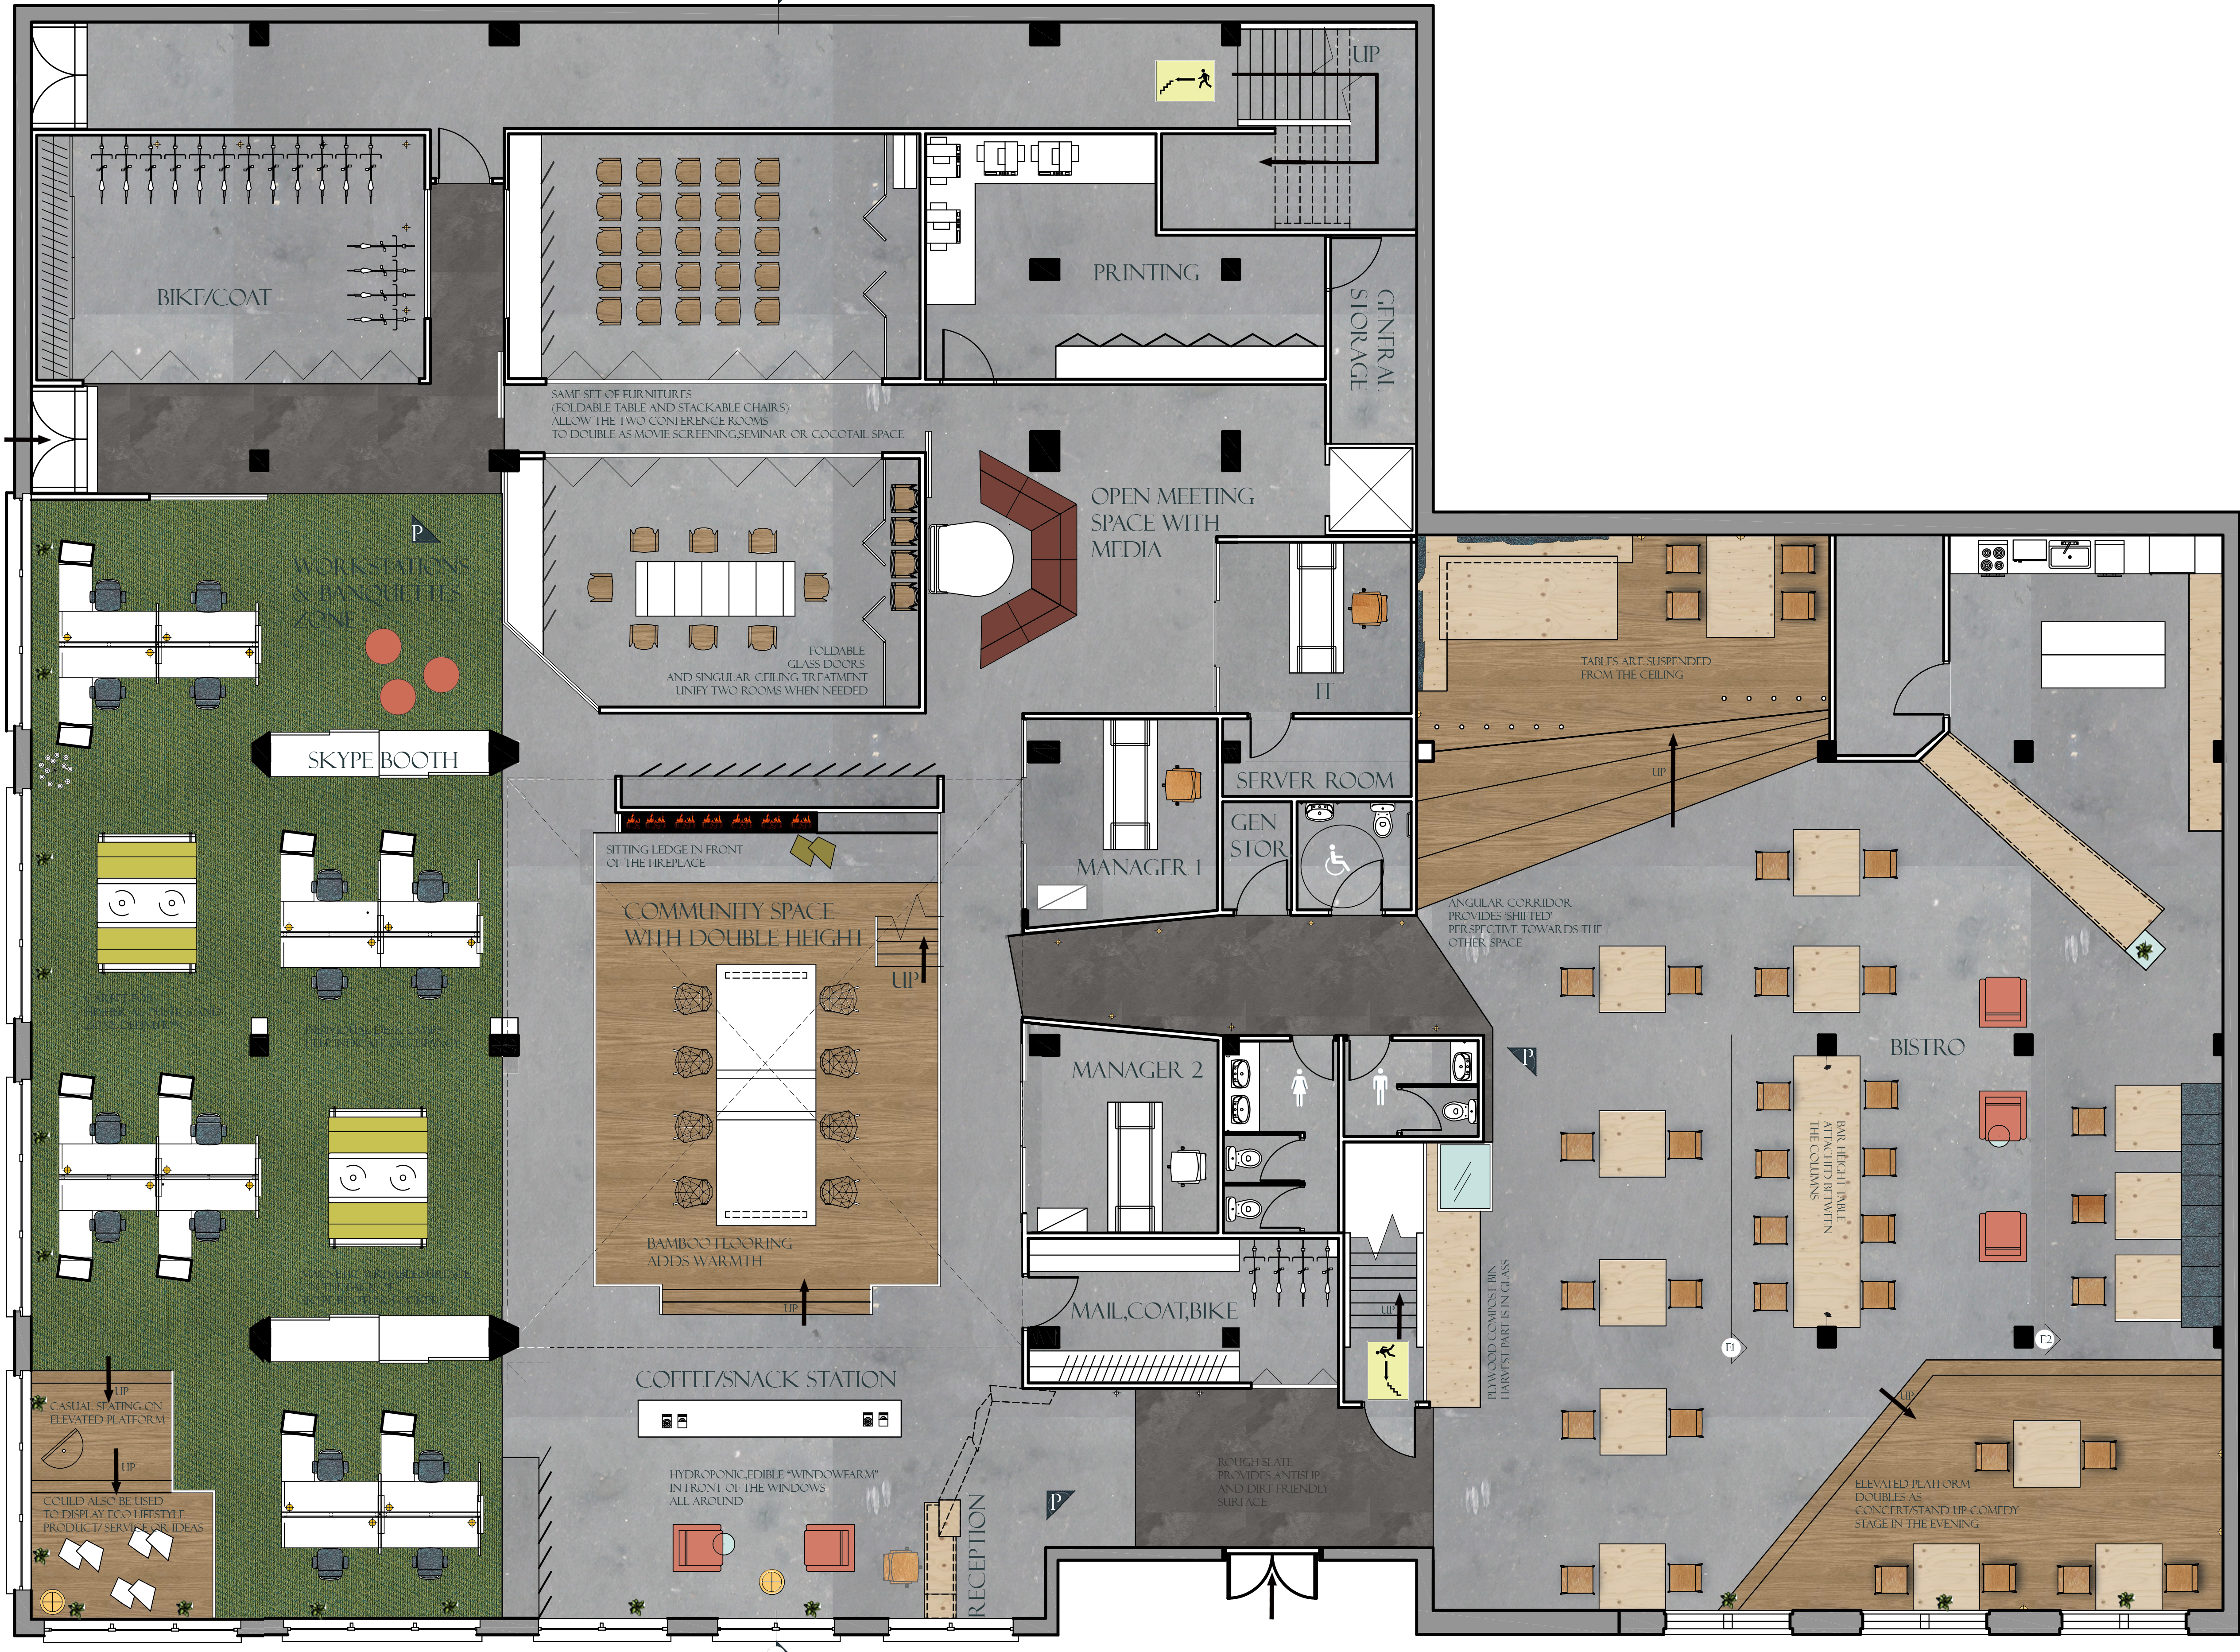 Building Plans Office Layout additionally Metal Buildings  ponents additionally Cad symbols  colour furniture chairs   club lounge in addition Sylvia Park Growth Plans additionally Futuristic Food Shopping Market Hall By Mvrdv In Rotterdam 16819. on office building floor plans